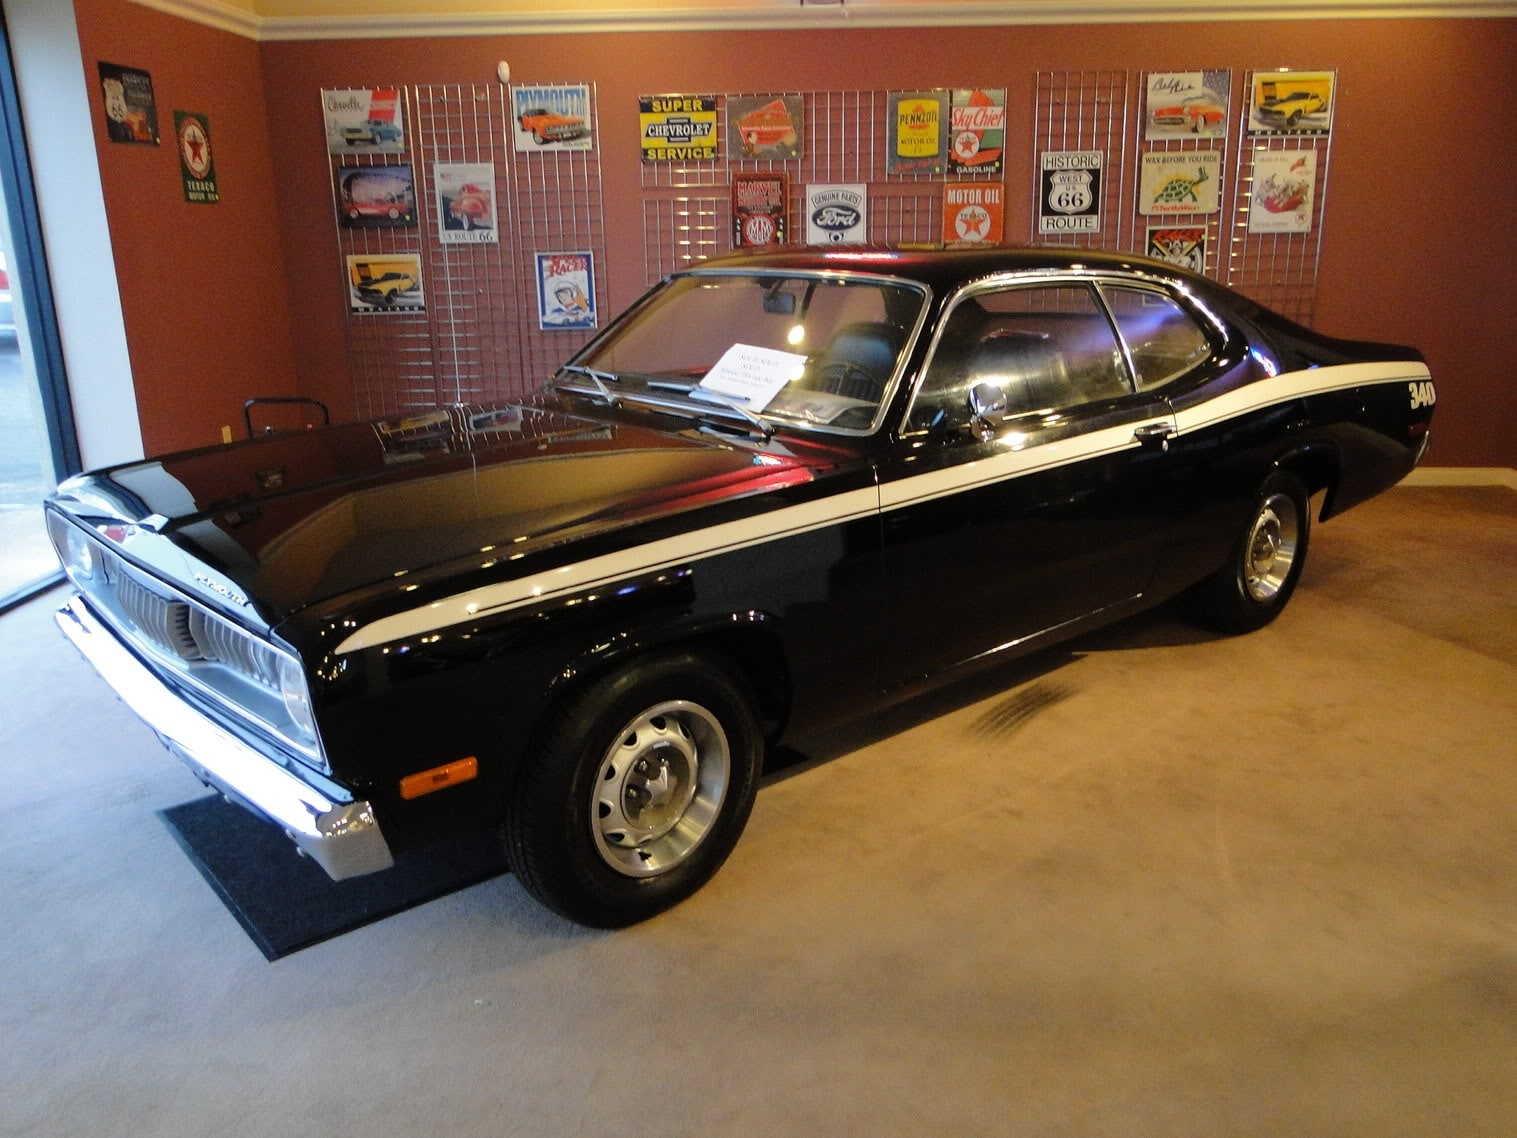 new 1972 plymouth duster 340 sold to eastern shore glen burnie md baltimore. Black Bedroom Furniture Sets. Home Design Ideas